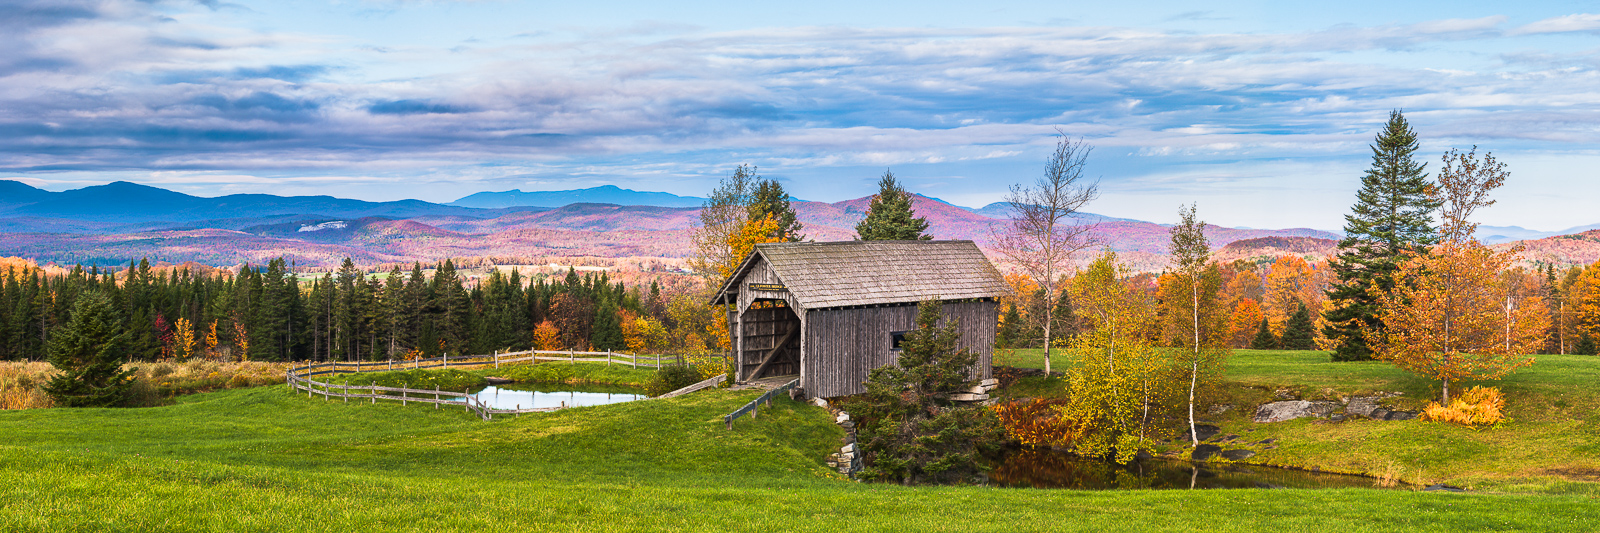 A Vermont Bridge,Covered Bridge, Vermont, Autumn, foliage,New,England, photo